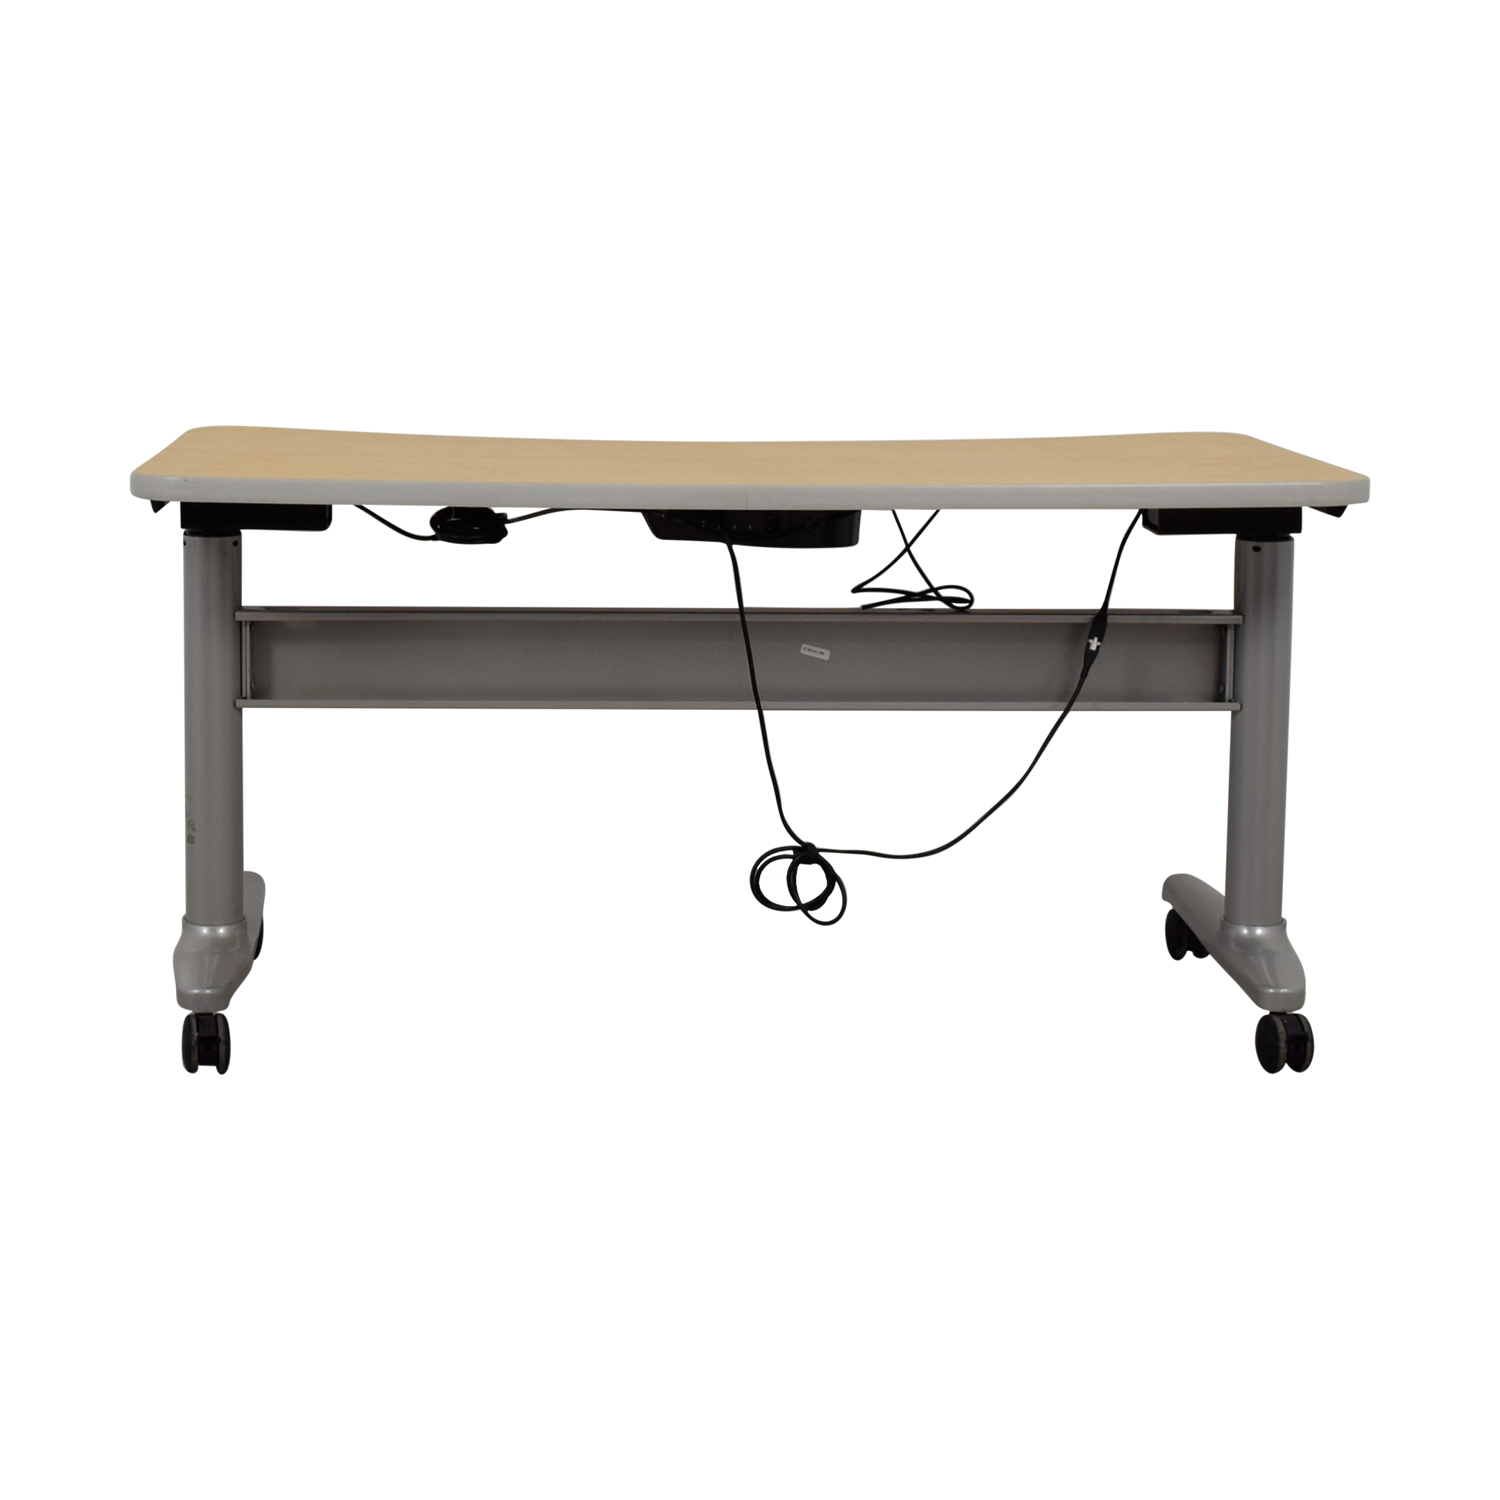 UpDesk UpDesk Electronically Controlled Standing Desk on Castors coupon